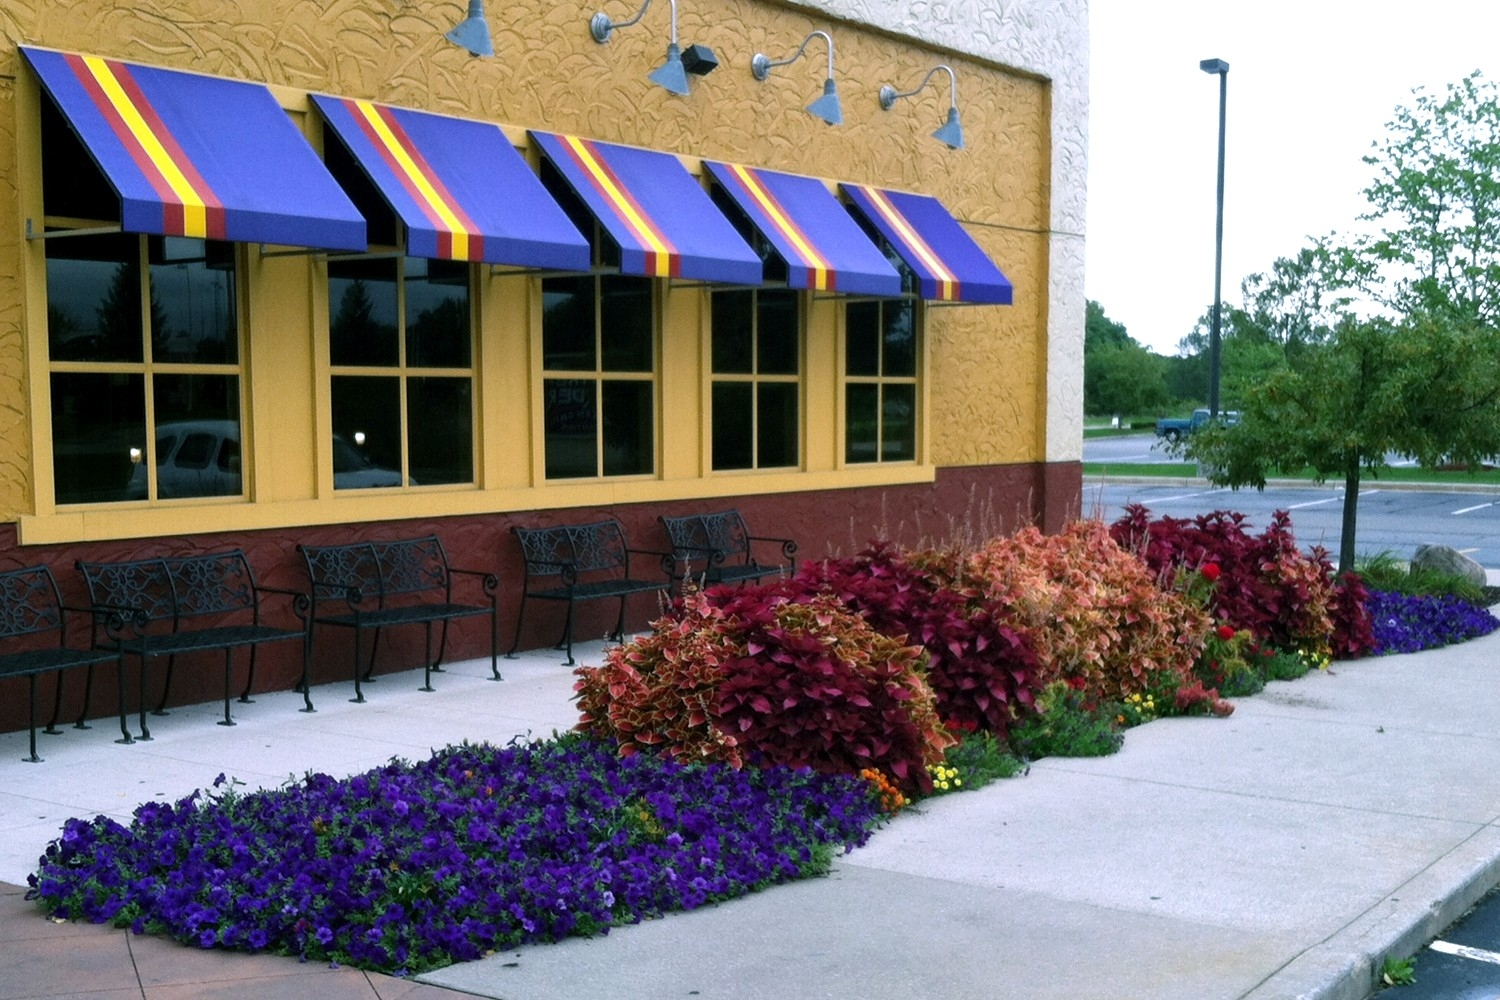 Landscapers for Business in Grand Rapids MI - ProMowLandscape.com